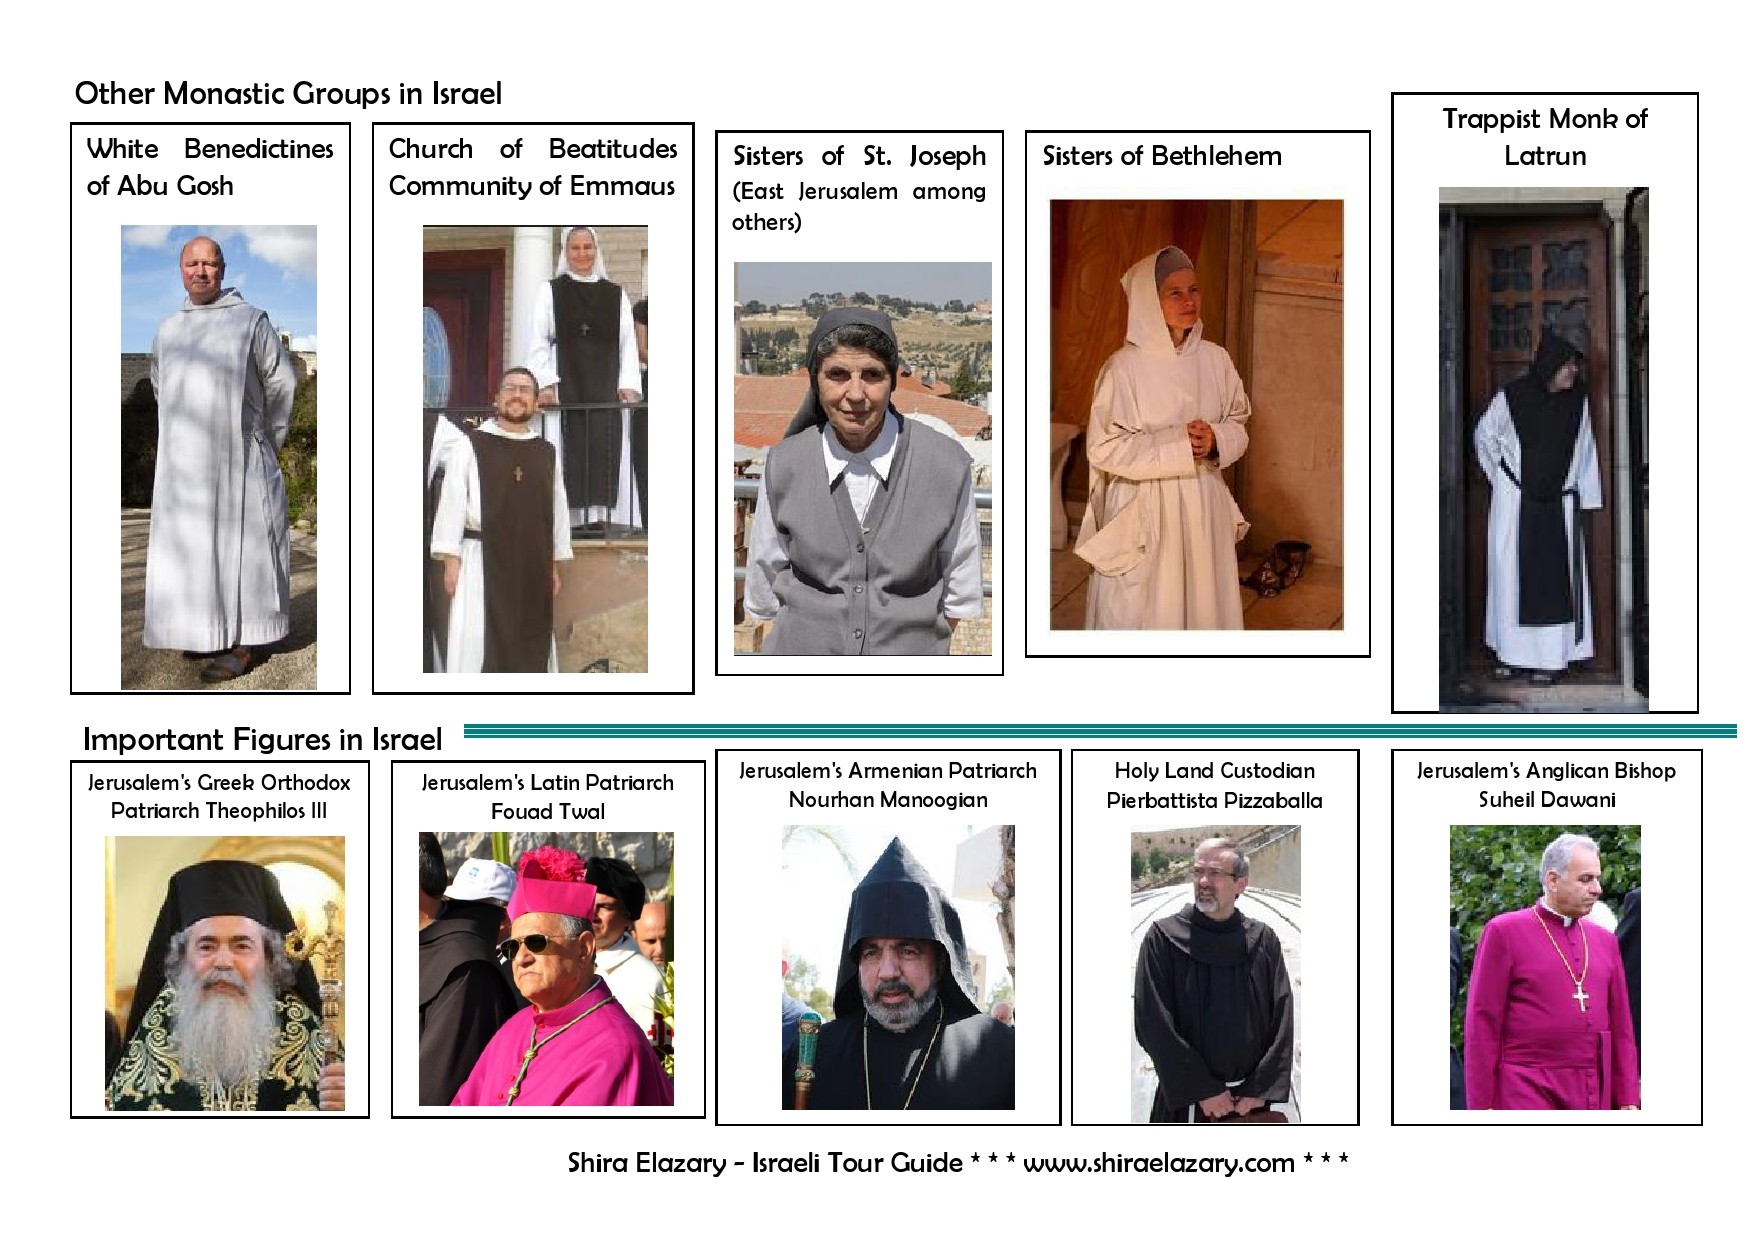 Images of monks and nuns from different denominations, demonstrating their typical attire, plus images of important Christian figures in Israel